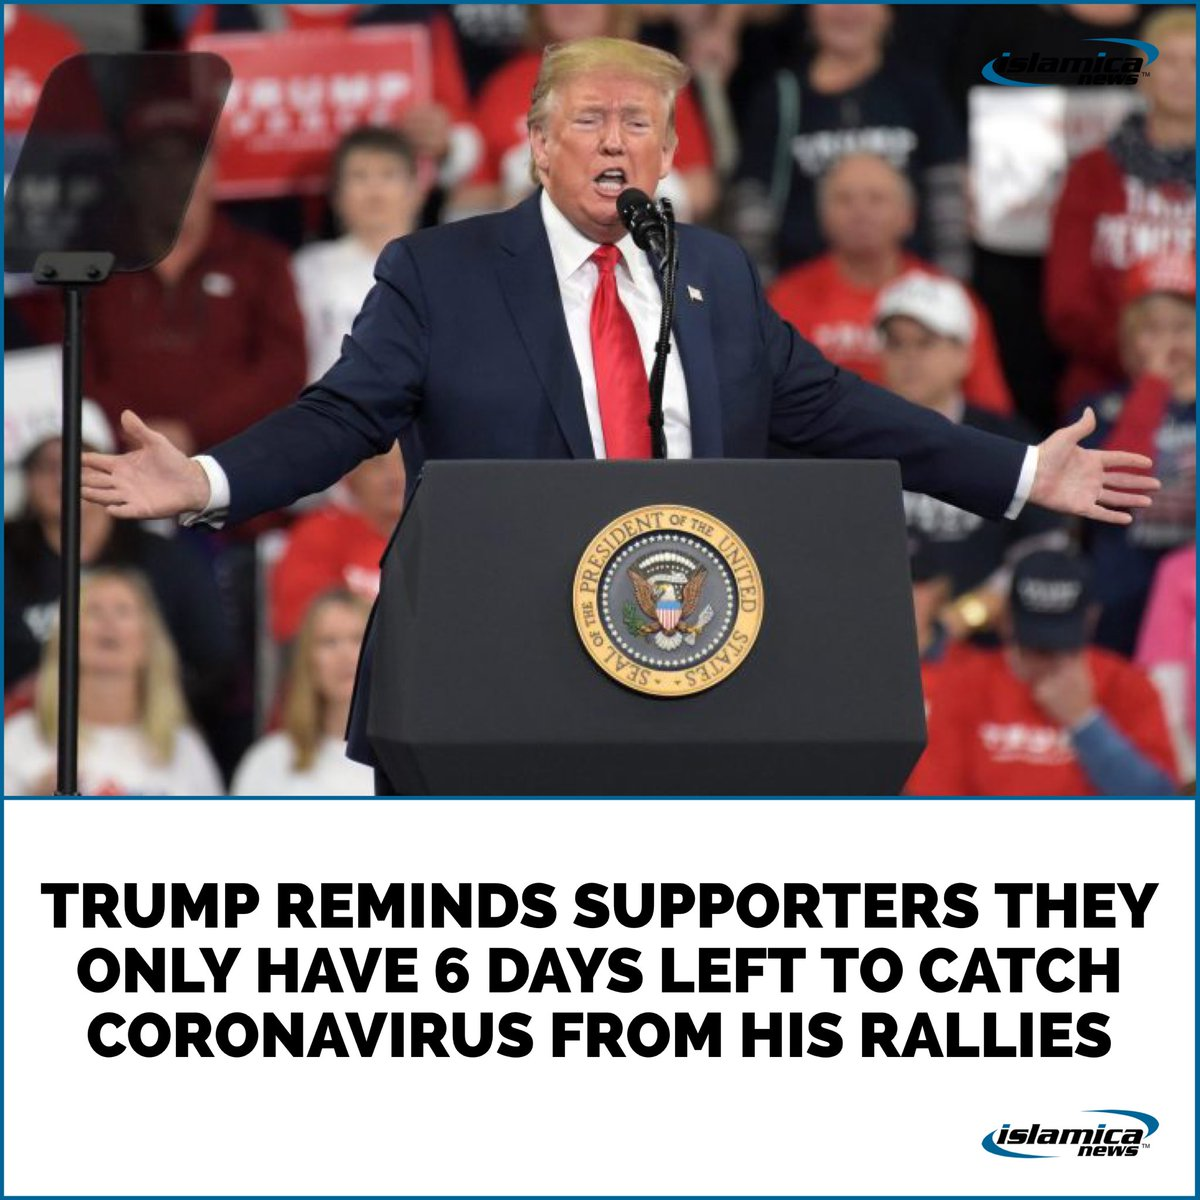 """""""I didn't want to be in this state, but how else could I recklessly expose you to the China virus?"""" rhetorically asked Trump to a densely packed, mask-free crowd primed for inoculation.  #maga #bidenharris2020 #trumpmemes #theonion #comedy #snl #humor  #funny #vote #election2020 https://t.co/6t1UKZTka0"""